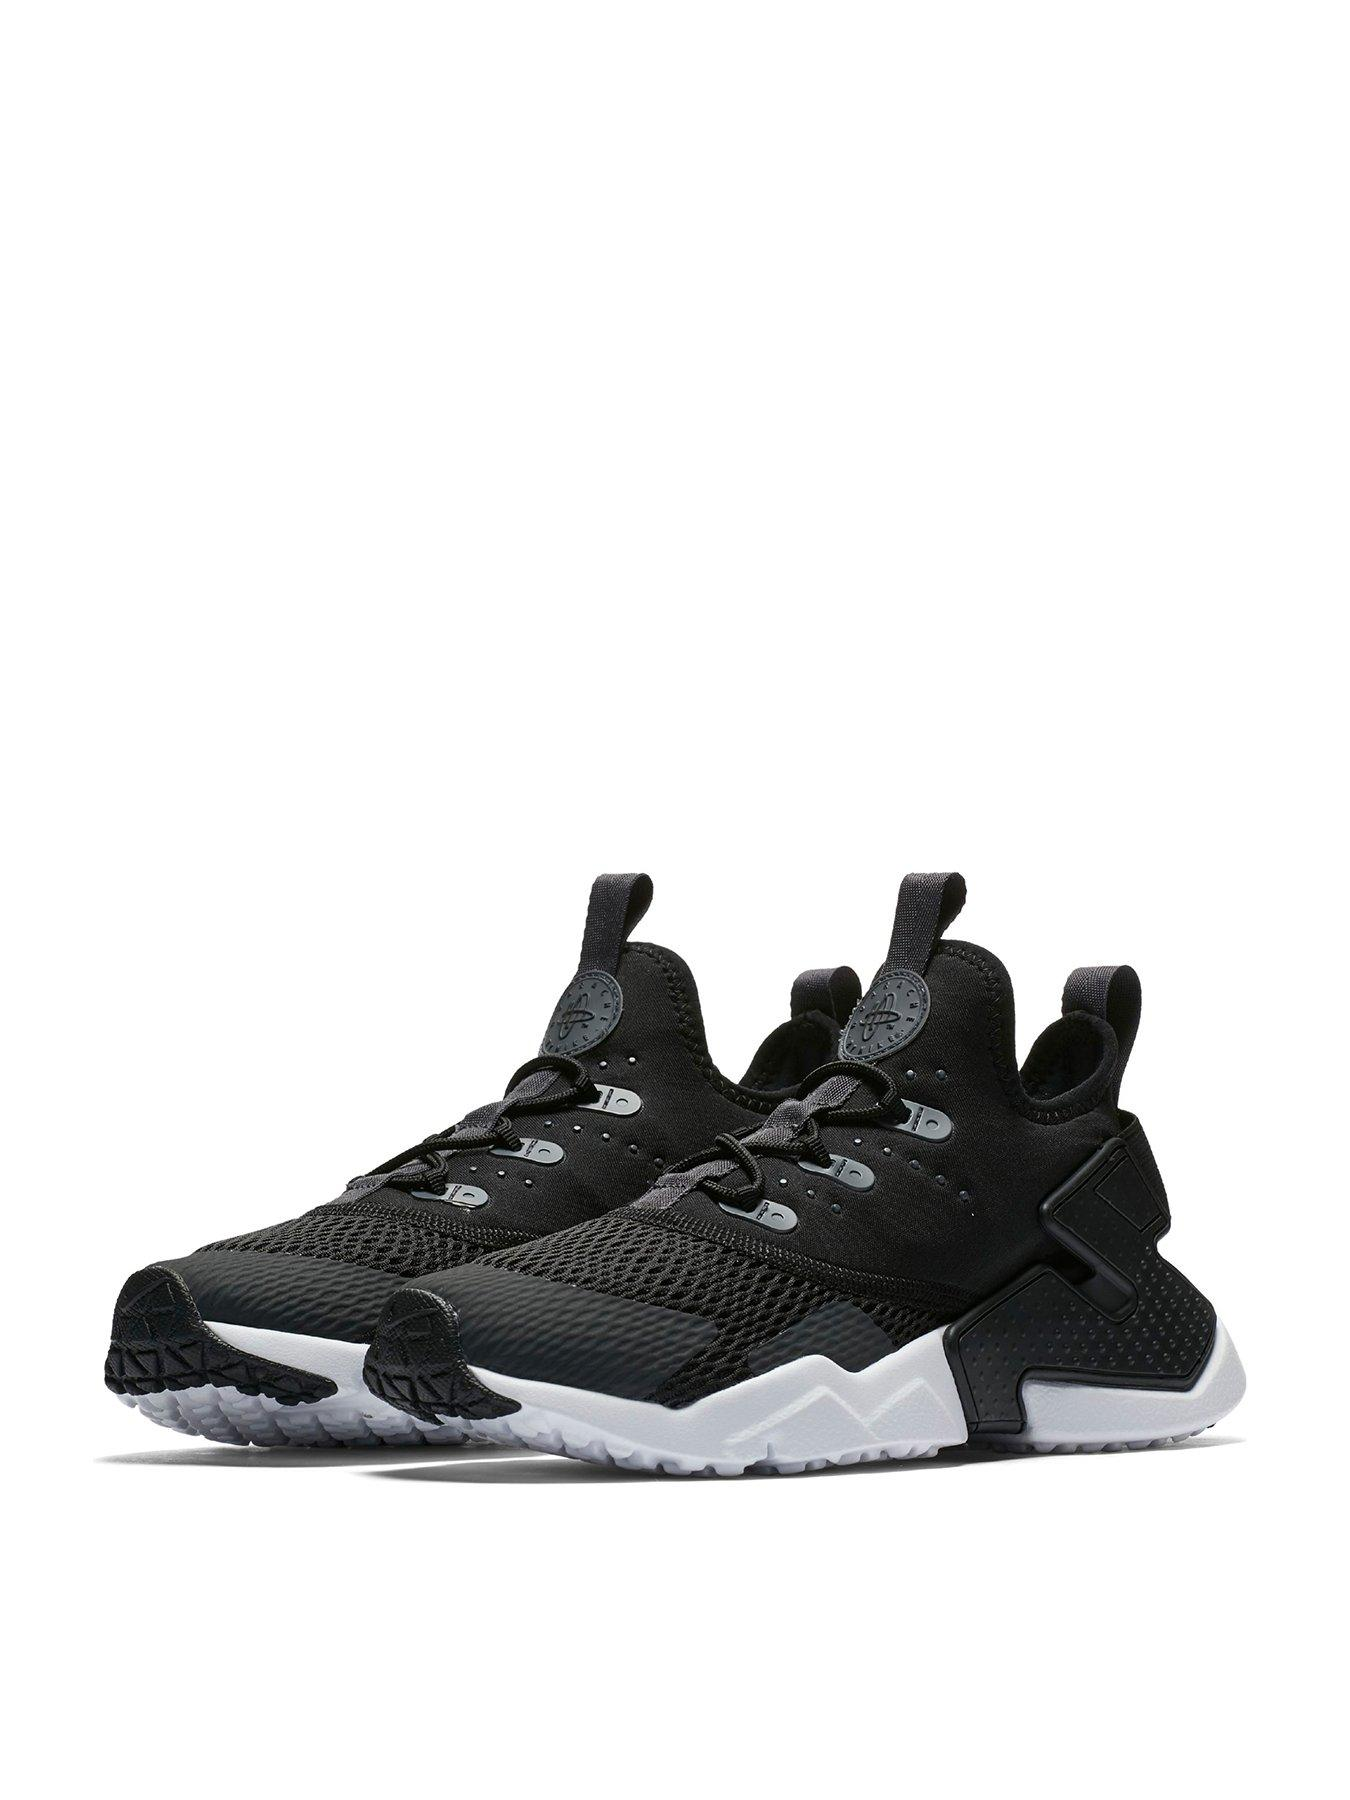 look out for 75939 nike 2bfb4 uk trainers nike 75939 air huarache drift artisan b8a0f4